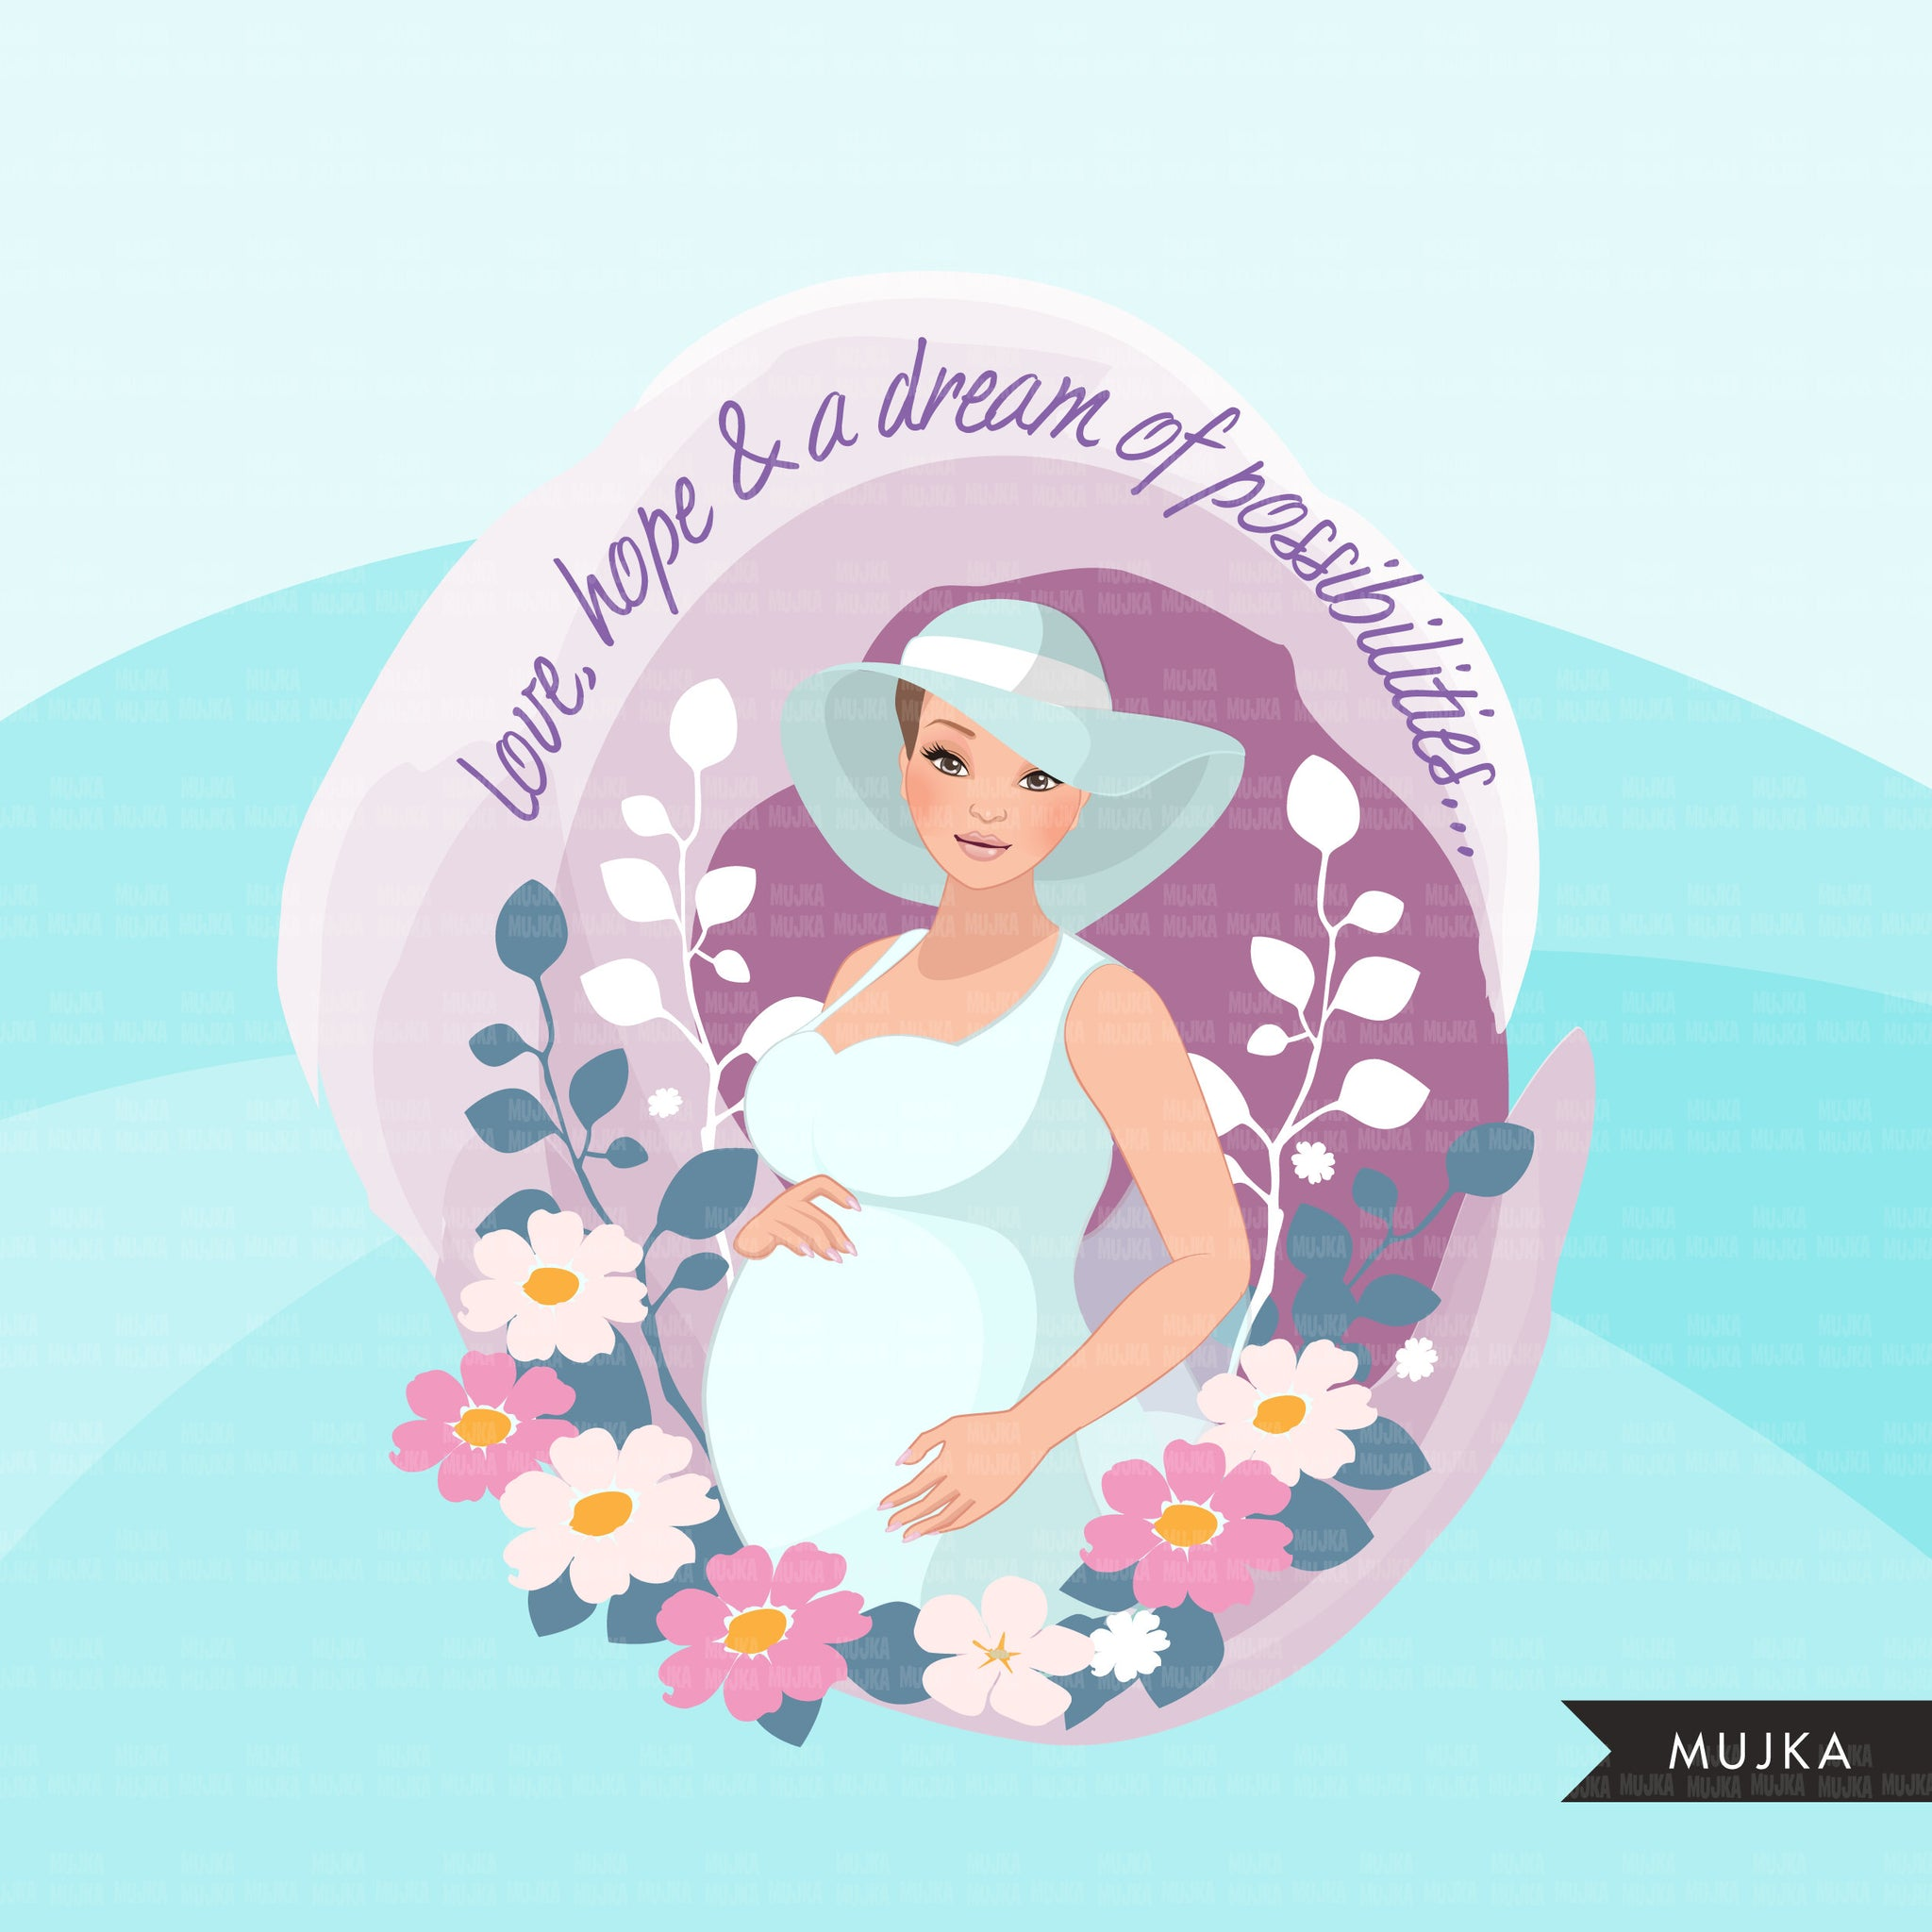 Mothers Day clipart, mother's day sublimation designs digital download, pregnancy, baby shower favors, wall art, pregnant woman png